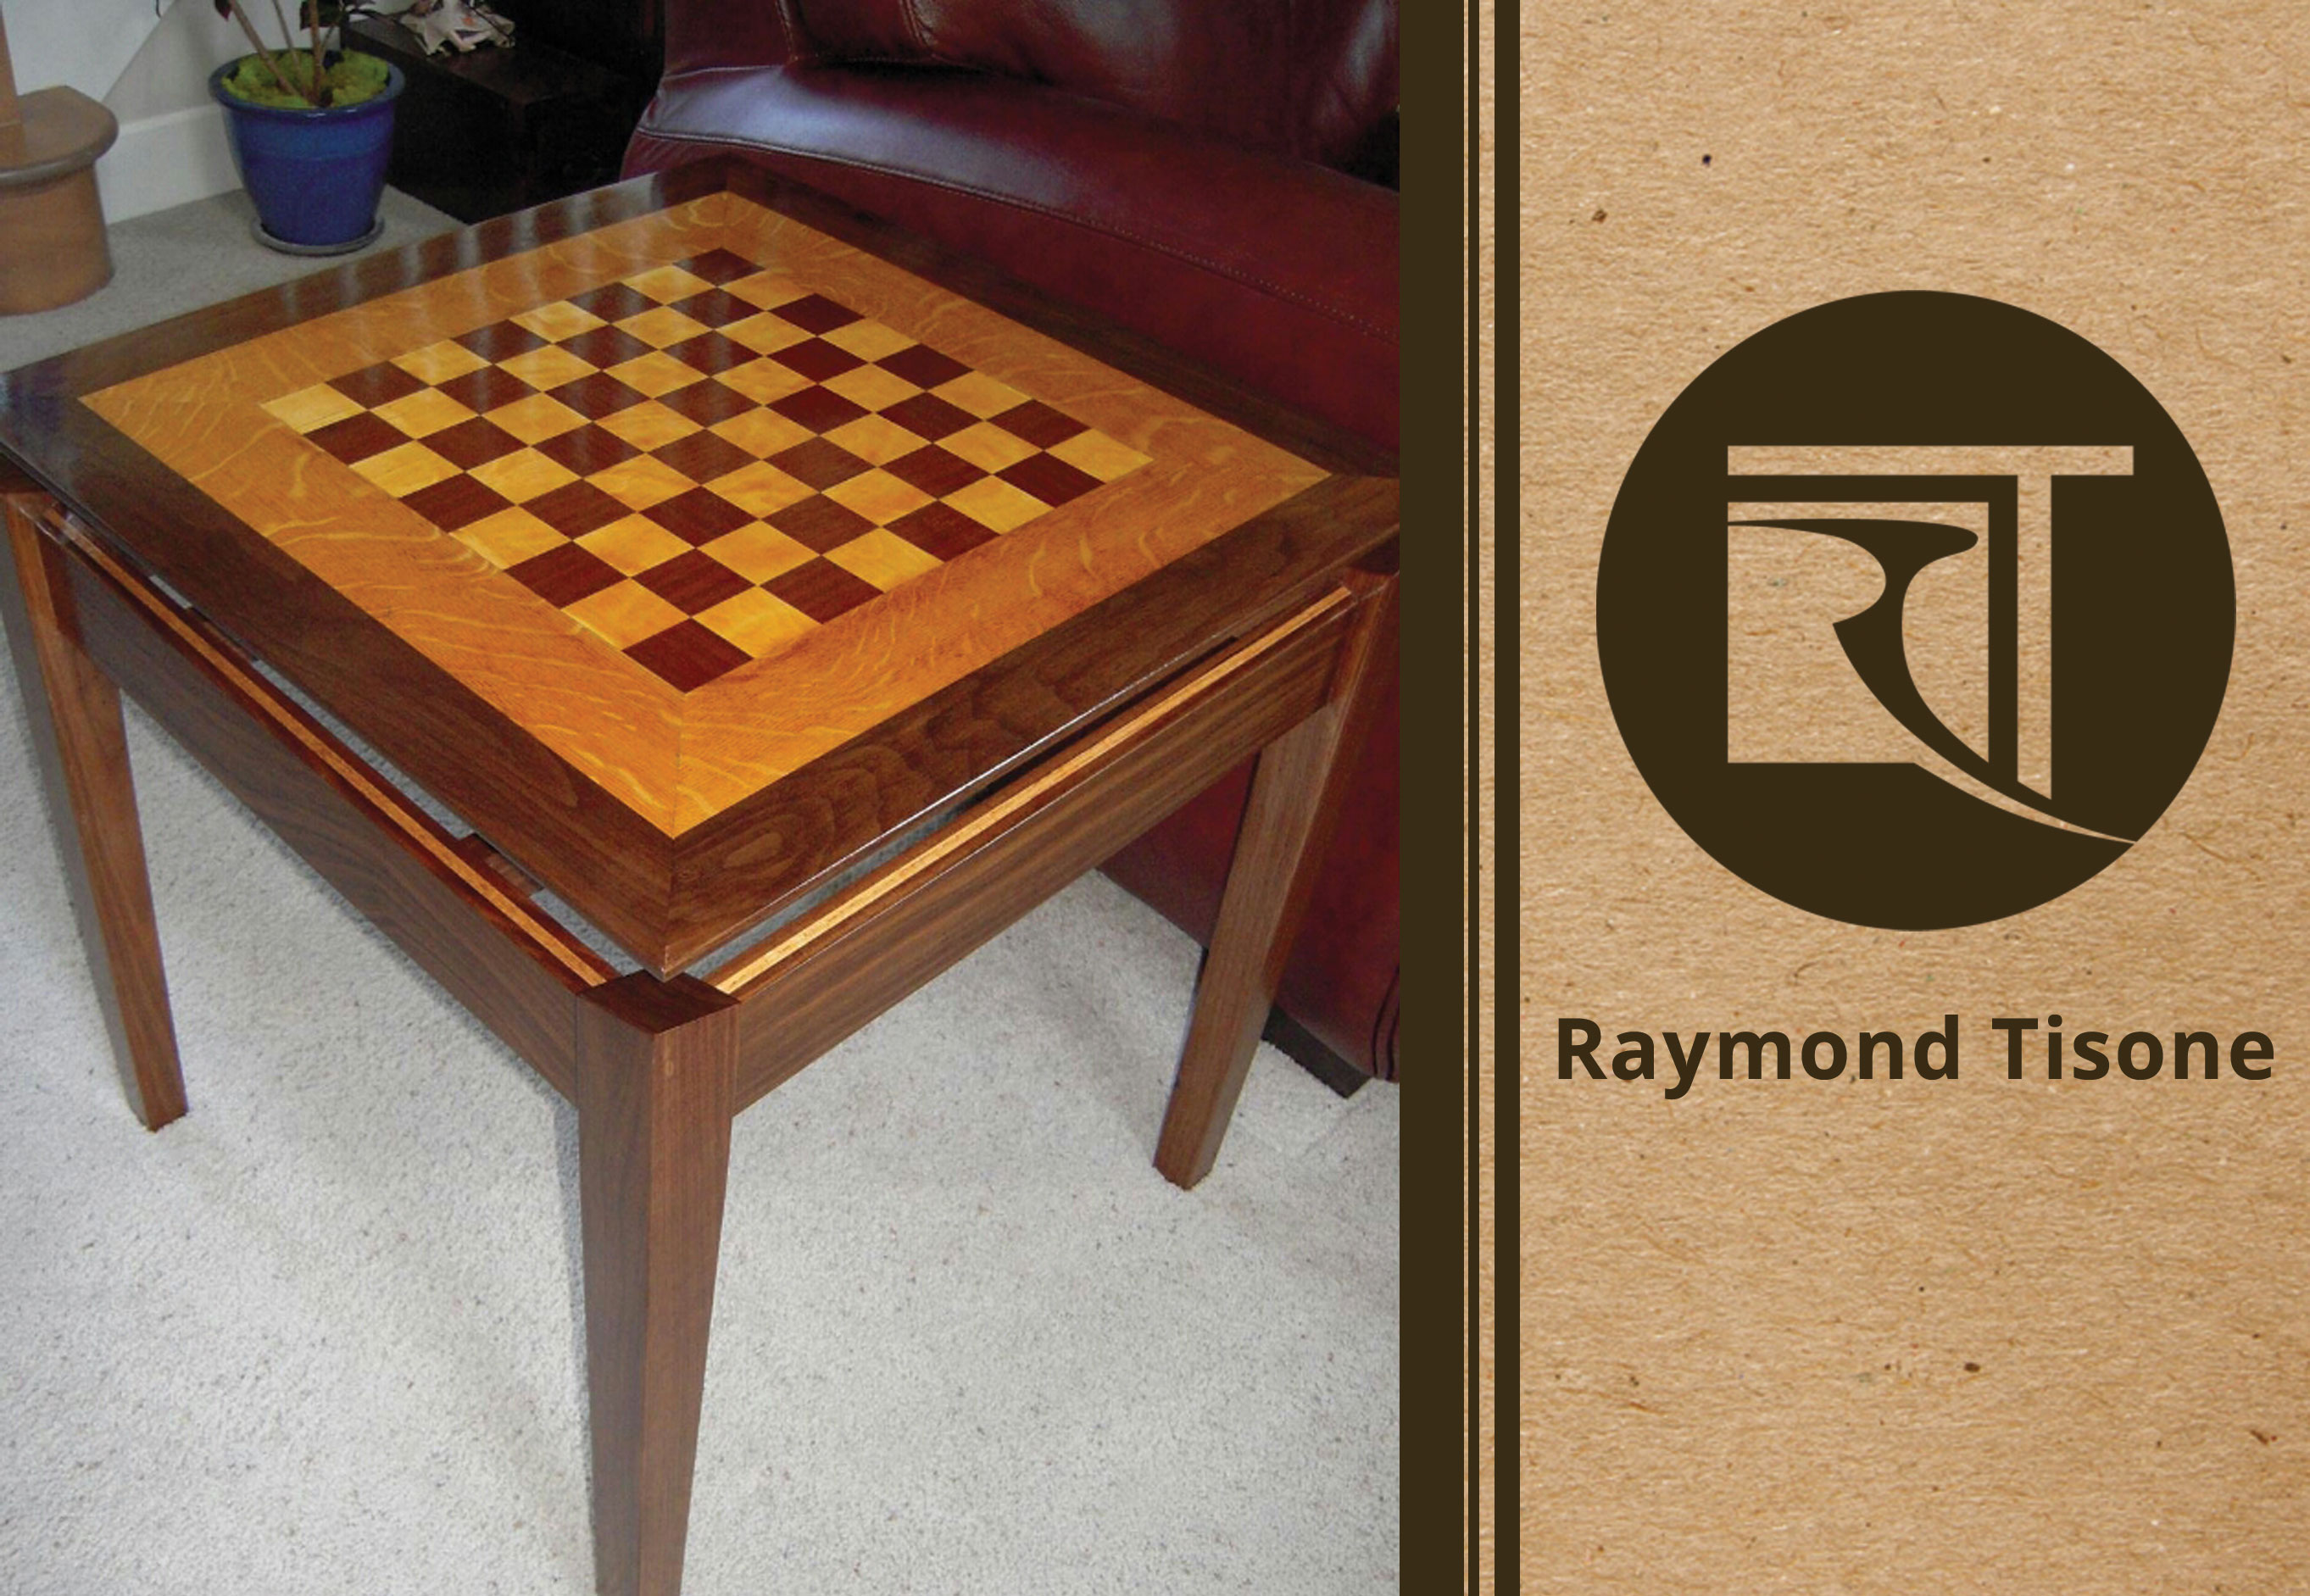 Attractive Custom Furniture U2013 Walnut Wood With Maple Accent Chess Table